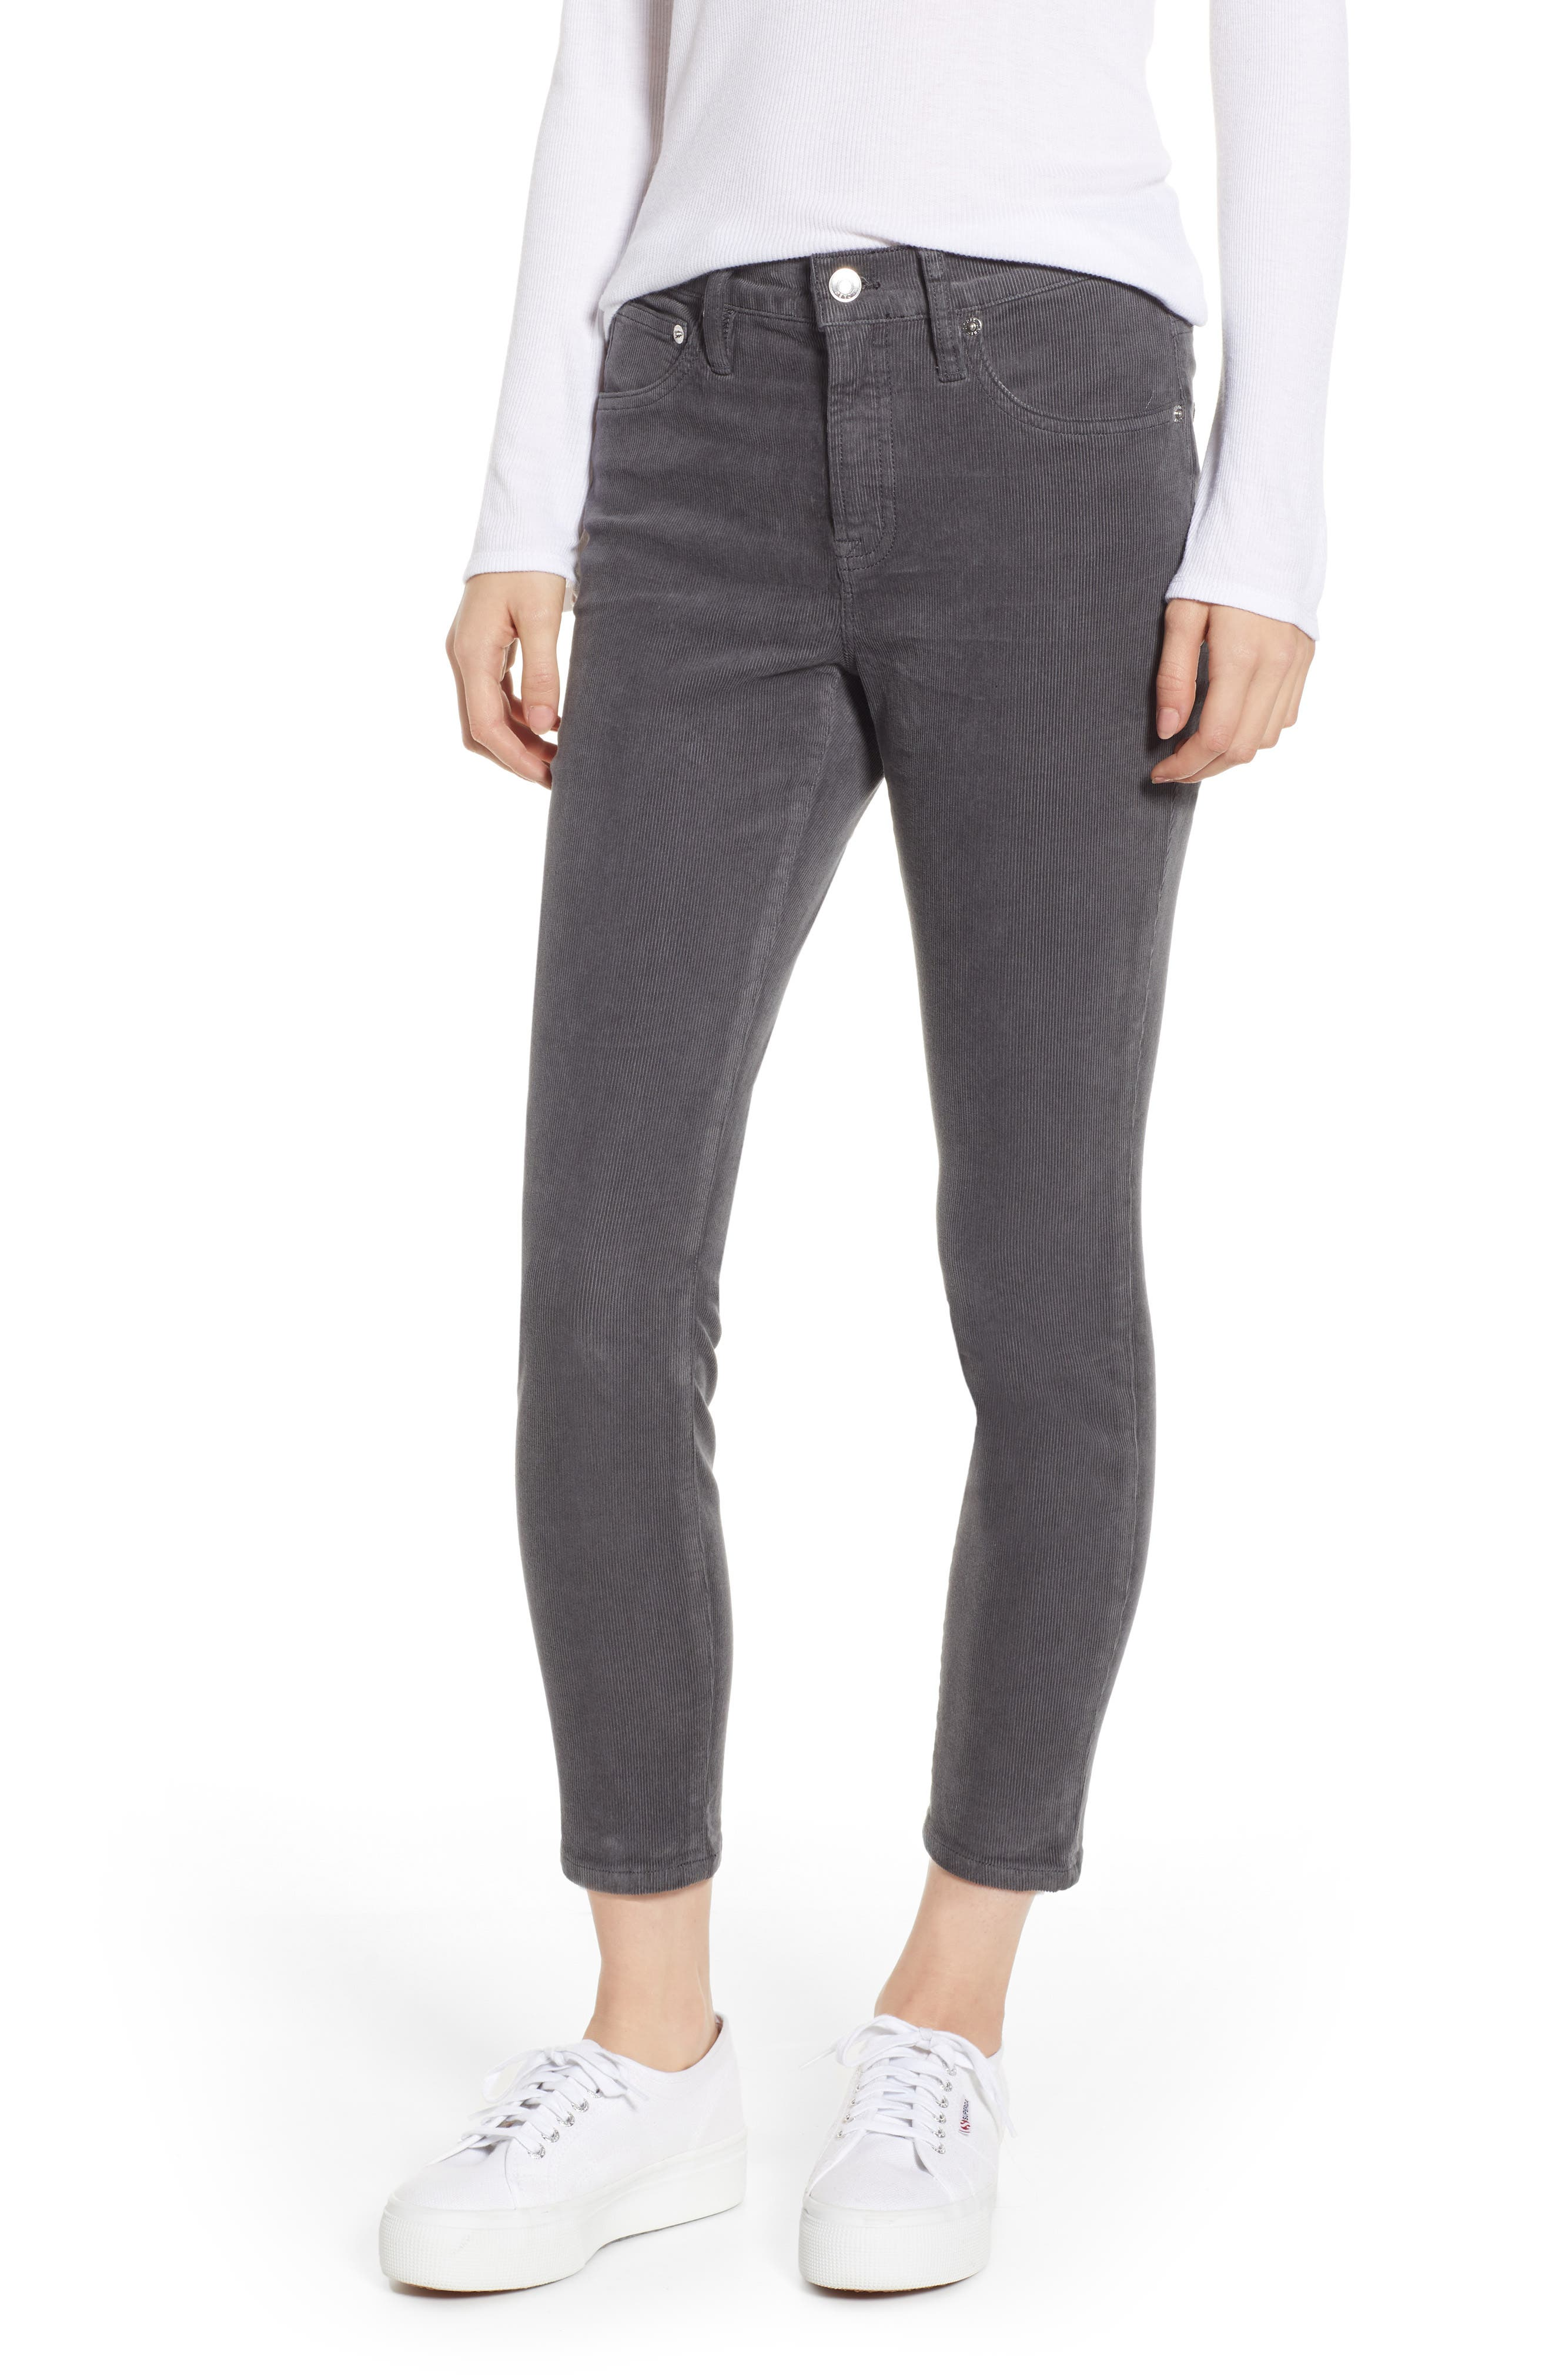 High Rise Toothpick Corduroy Jeans in Coal Grey